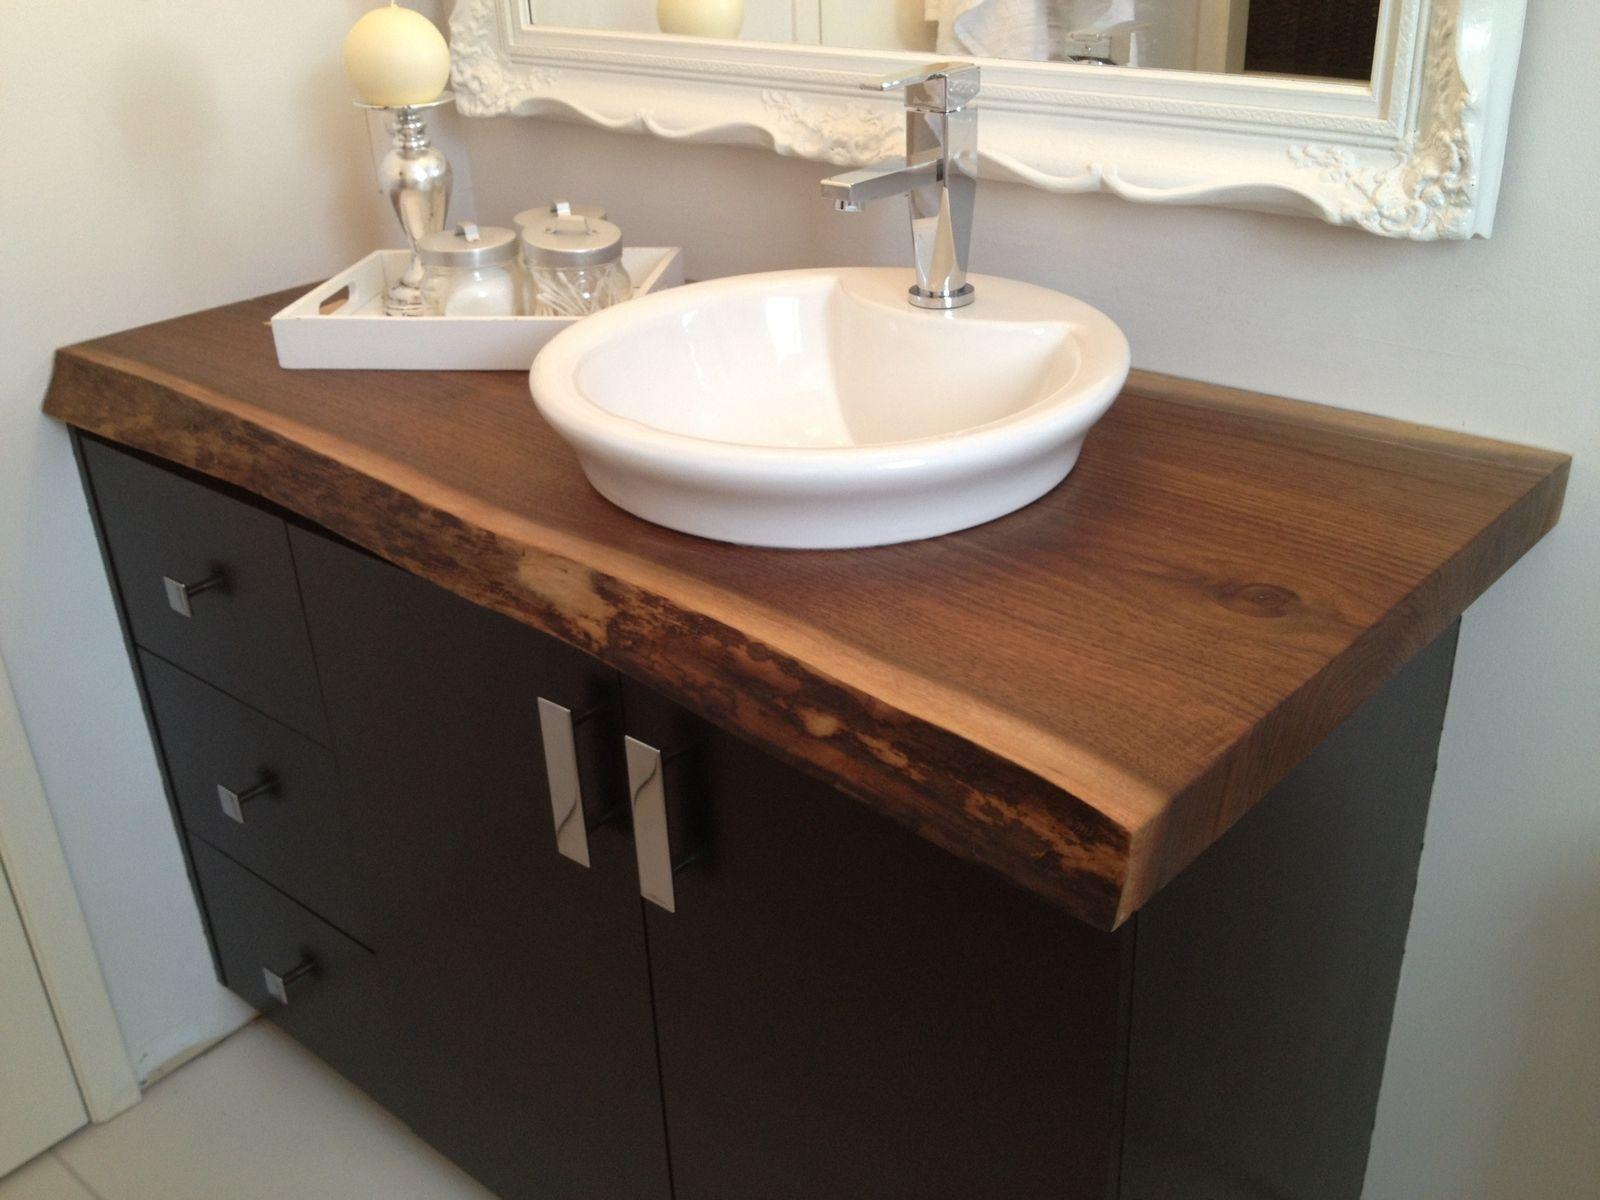 Live Edge Black Walnut Bathroom Countertop This Would Be Perfect For My Bedroom Sink Yes The To Master Bath Is In